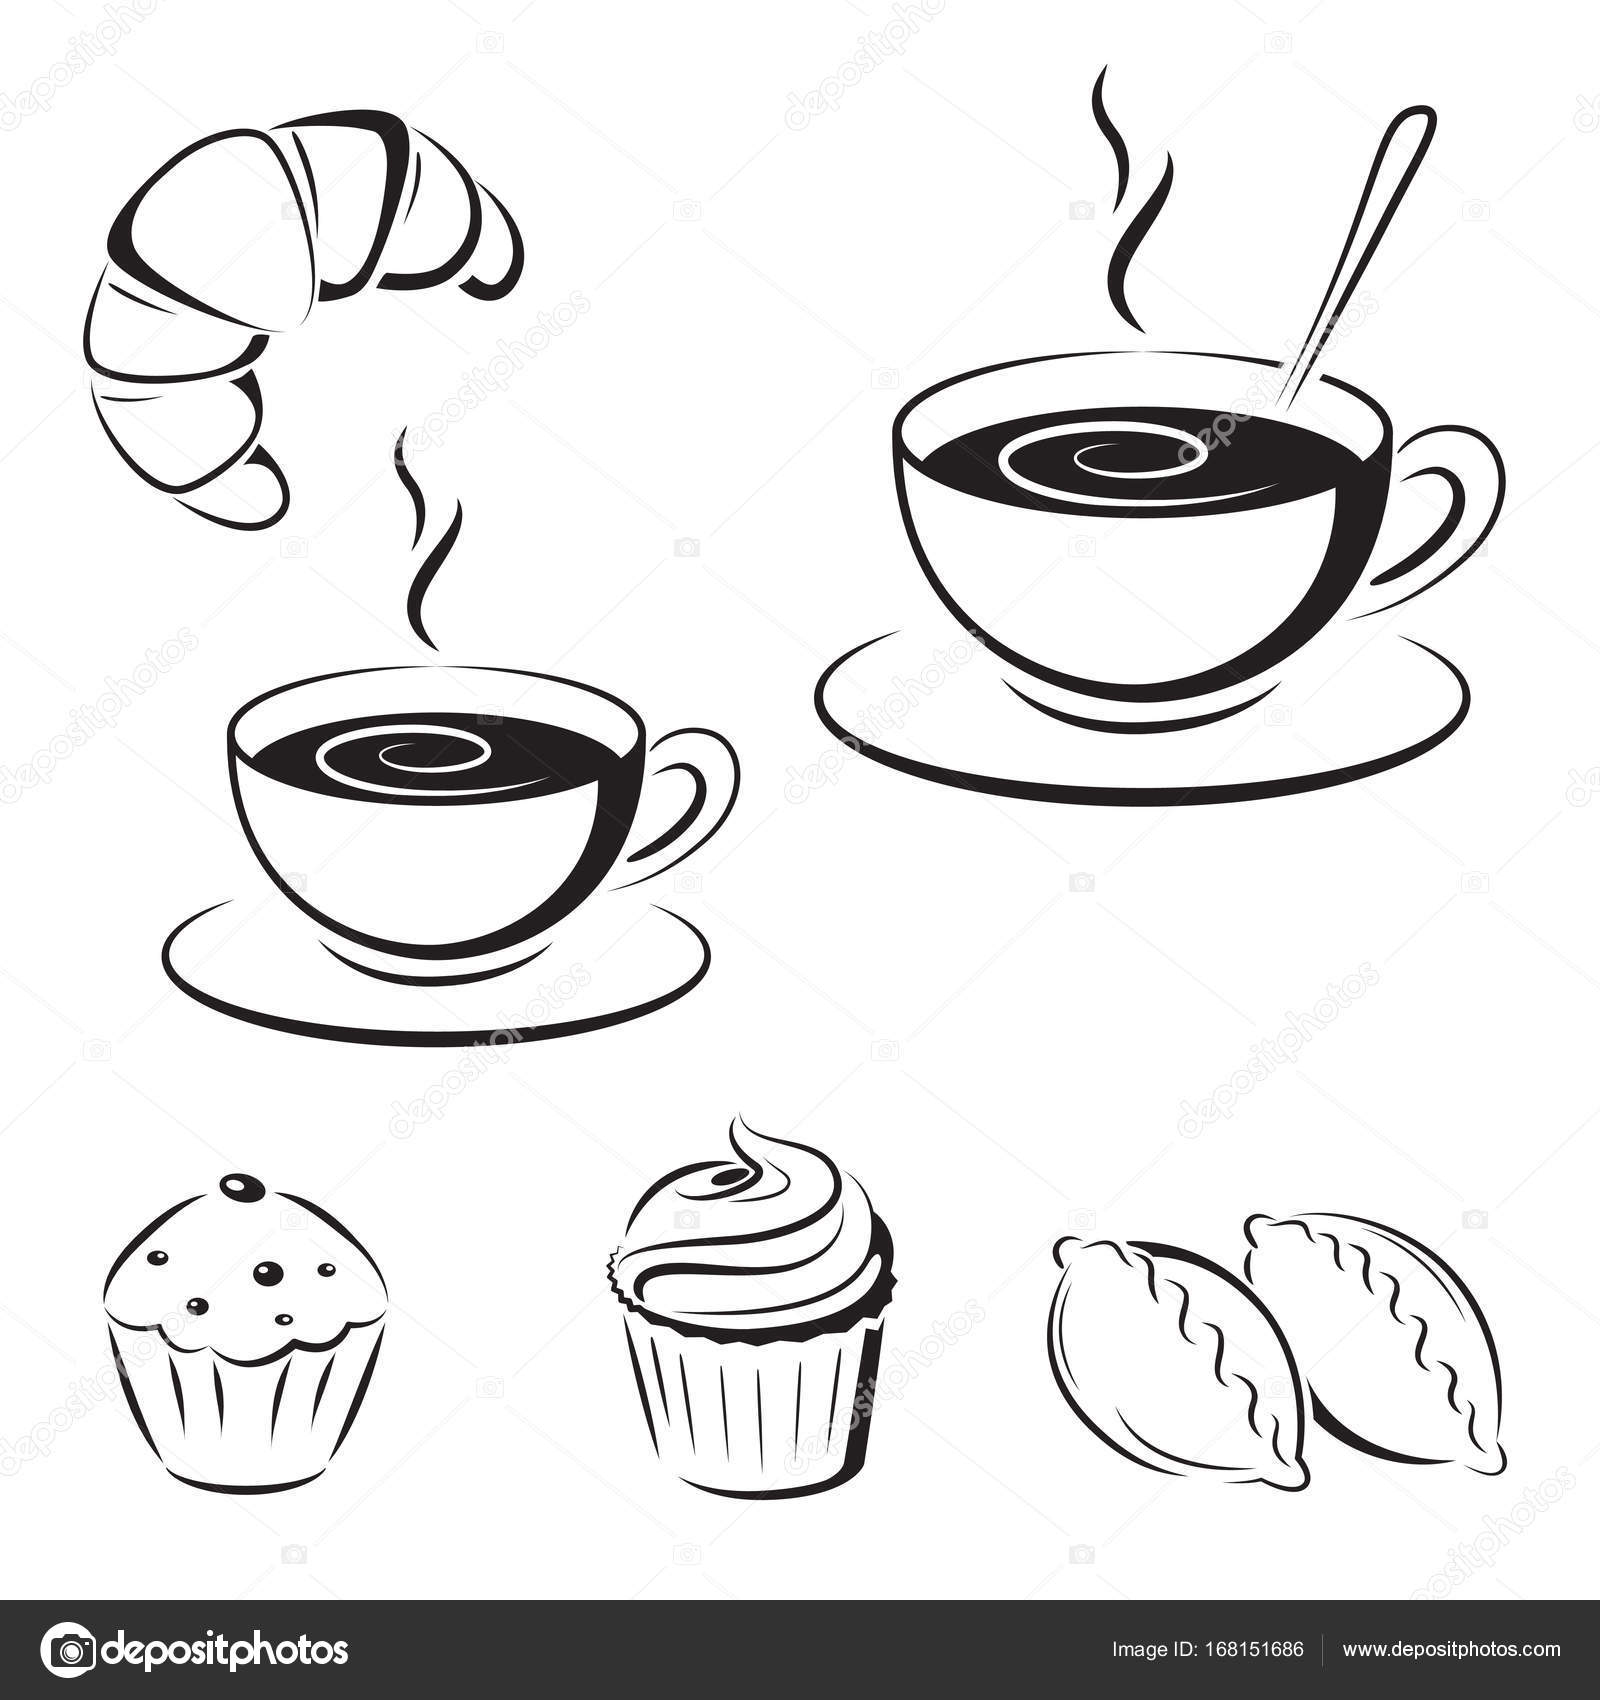 1600x1700 Set Of Black Sketches, Icons. A Cup Of Coffee And Pastry